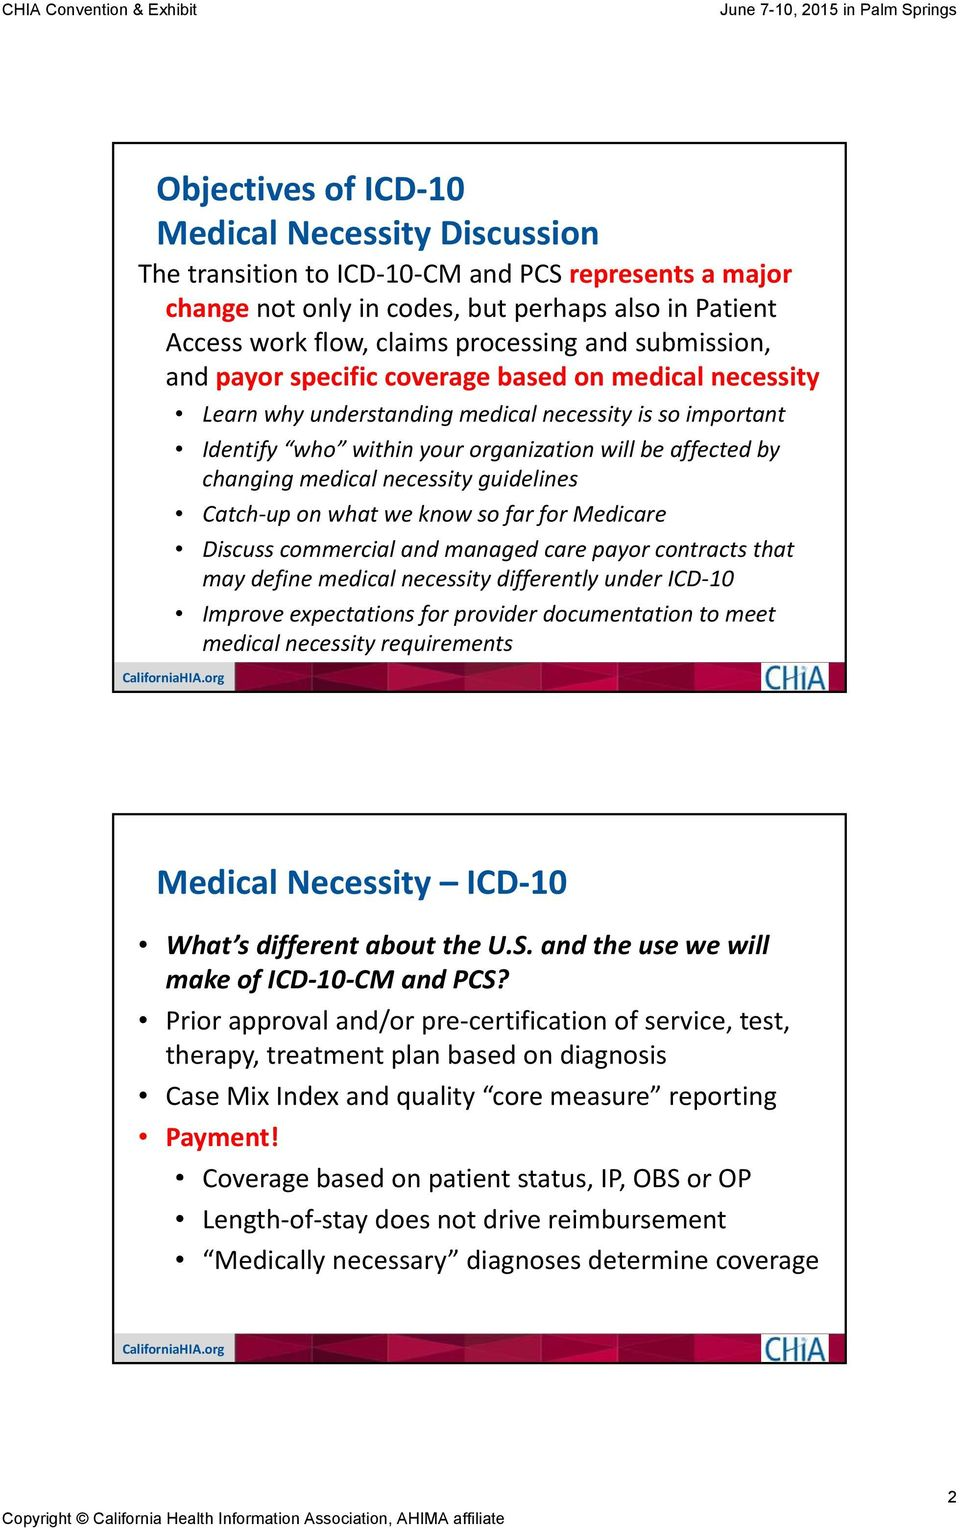 necessity guidelines Catch up on what we know so far for Mdi Medicare Discuss commercial and managed care payor contracts that may define medical necessity differently under ICD 0 Improve